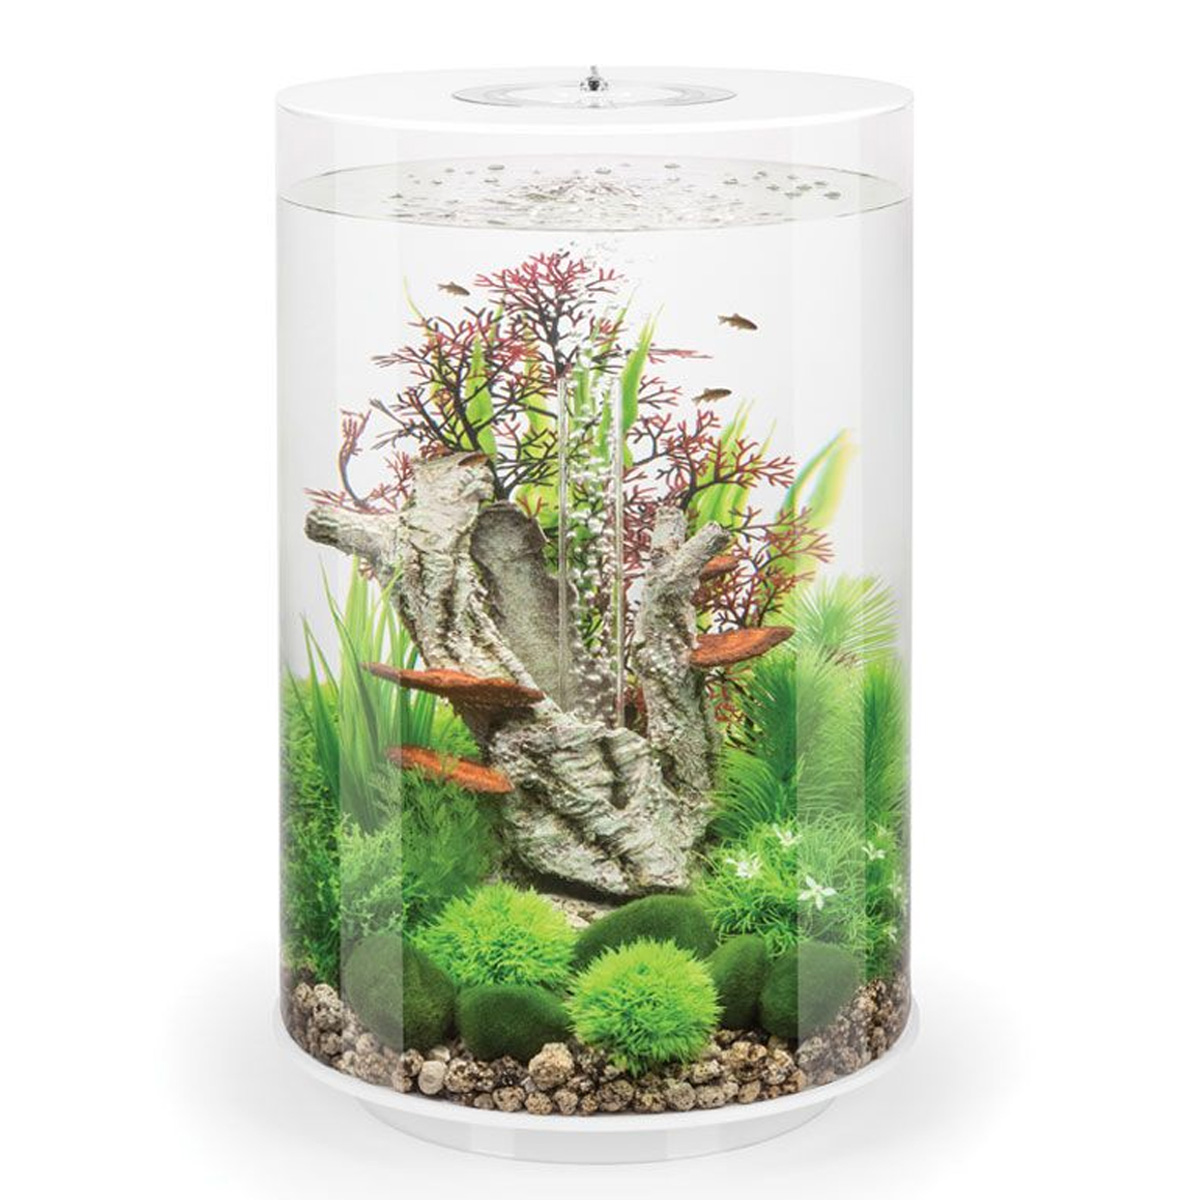 biorb tube 30l white aquarium with standard led lighting. Black Bedroom Furniture Sets. Home Design Ideas